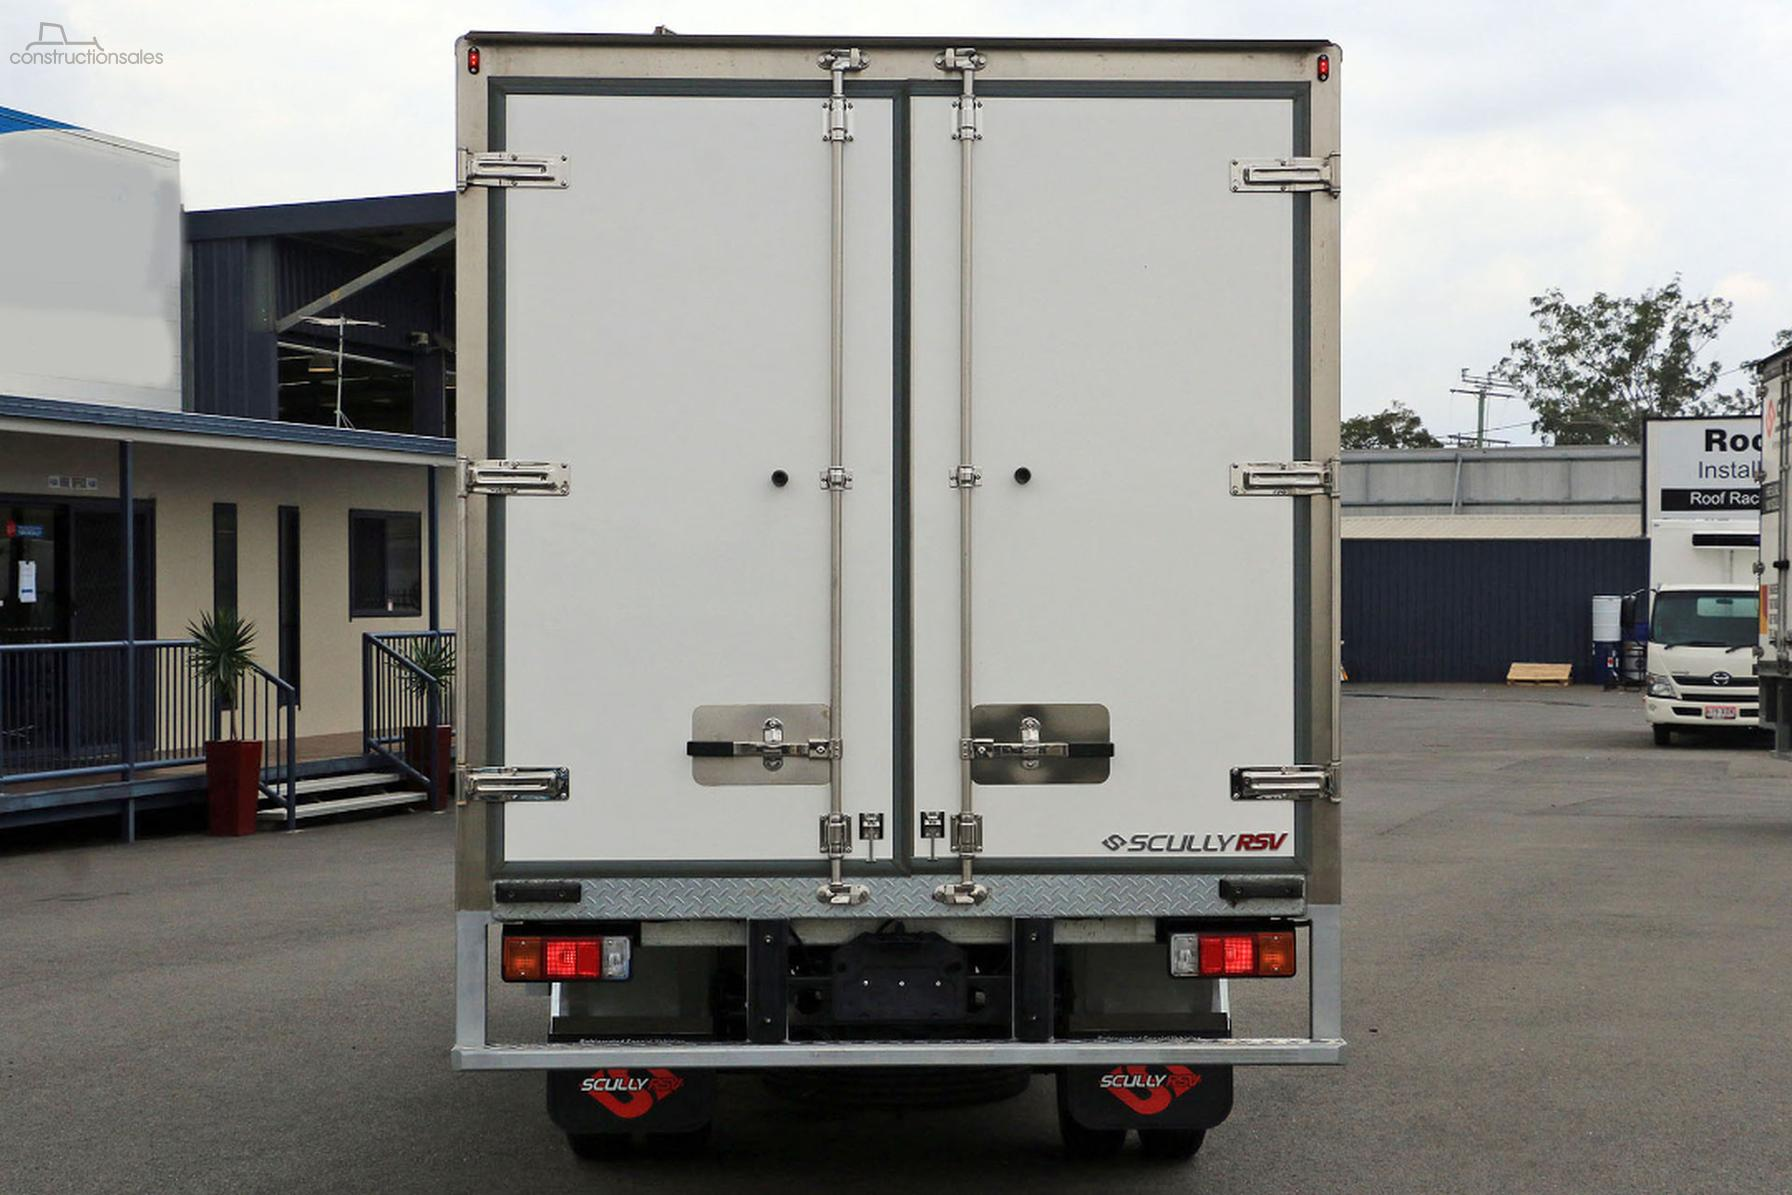 298982eeb7 2018 Hino 616IFS Scully RSV 2 Ton 3 Pallet Thermo Transit  Man-OAG-AD-15910476 - constructionsales.com.au